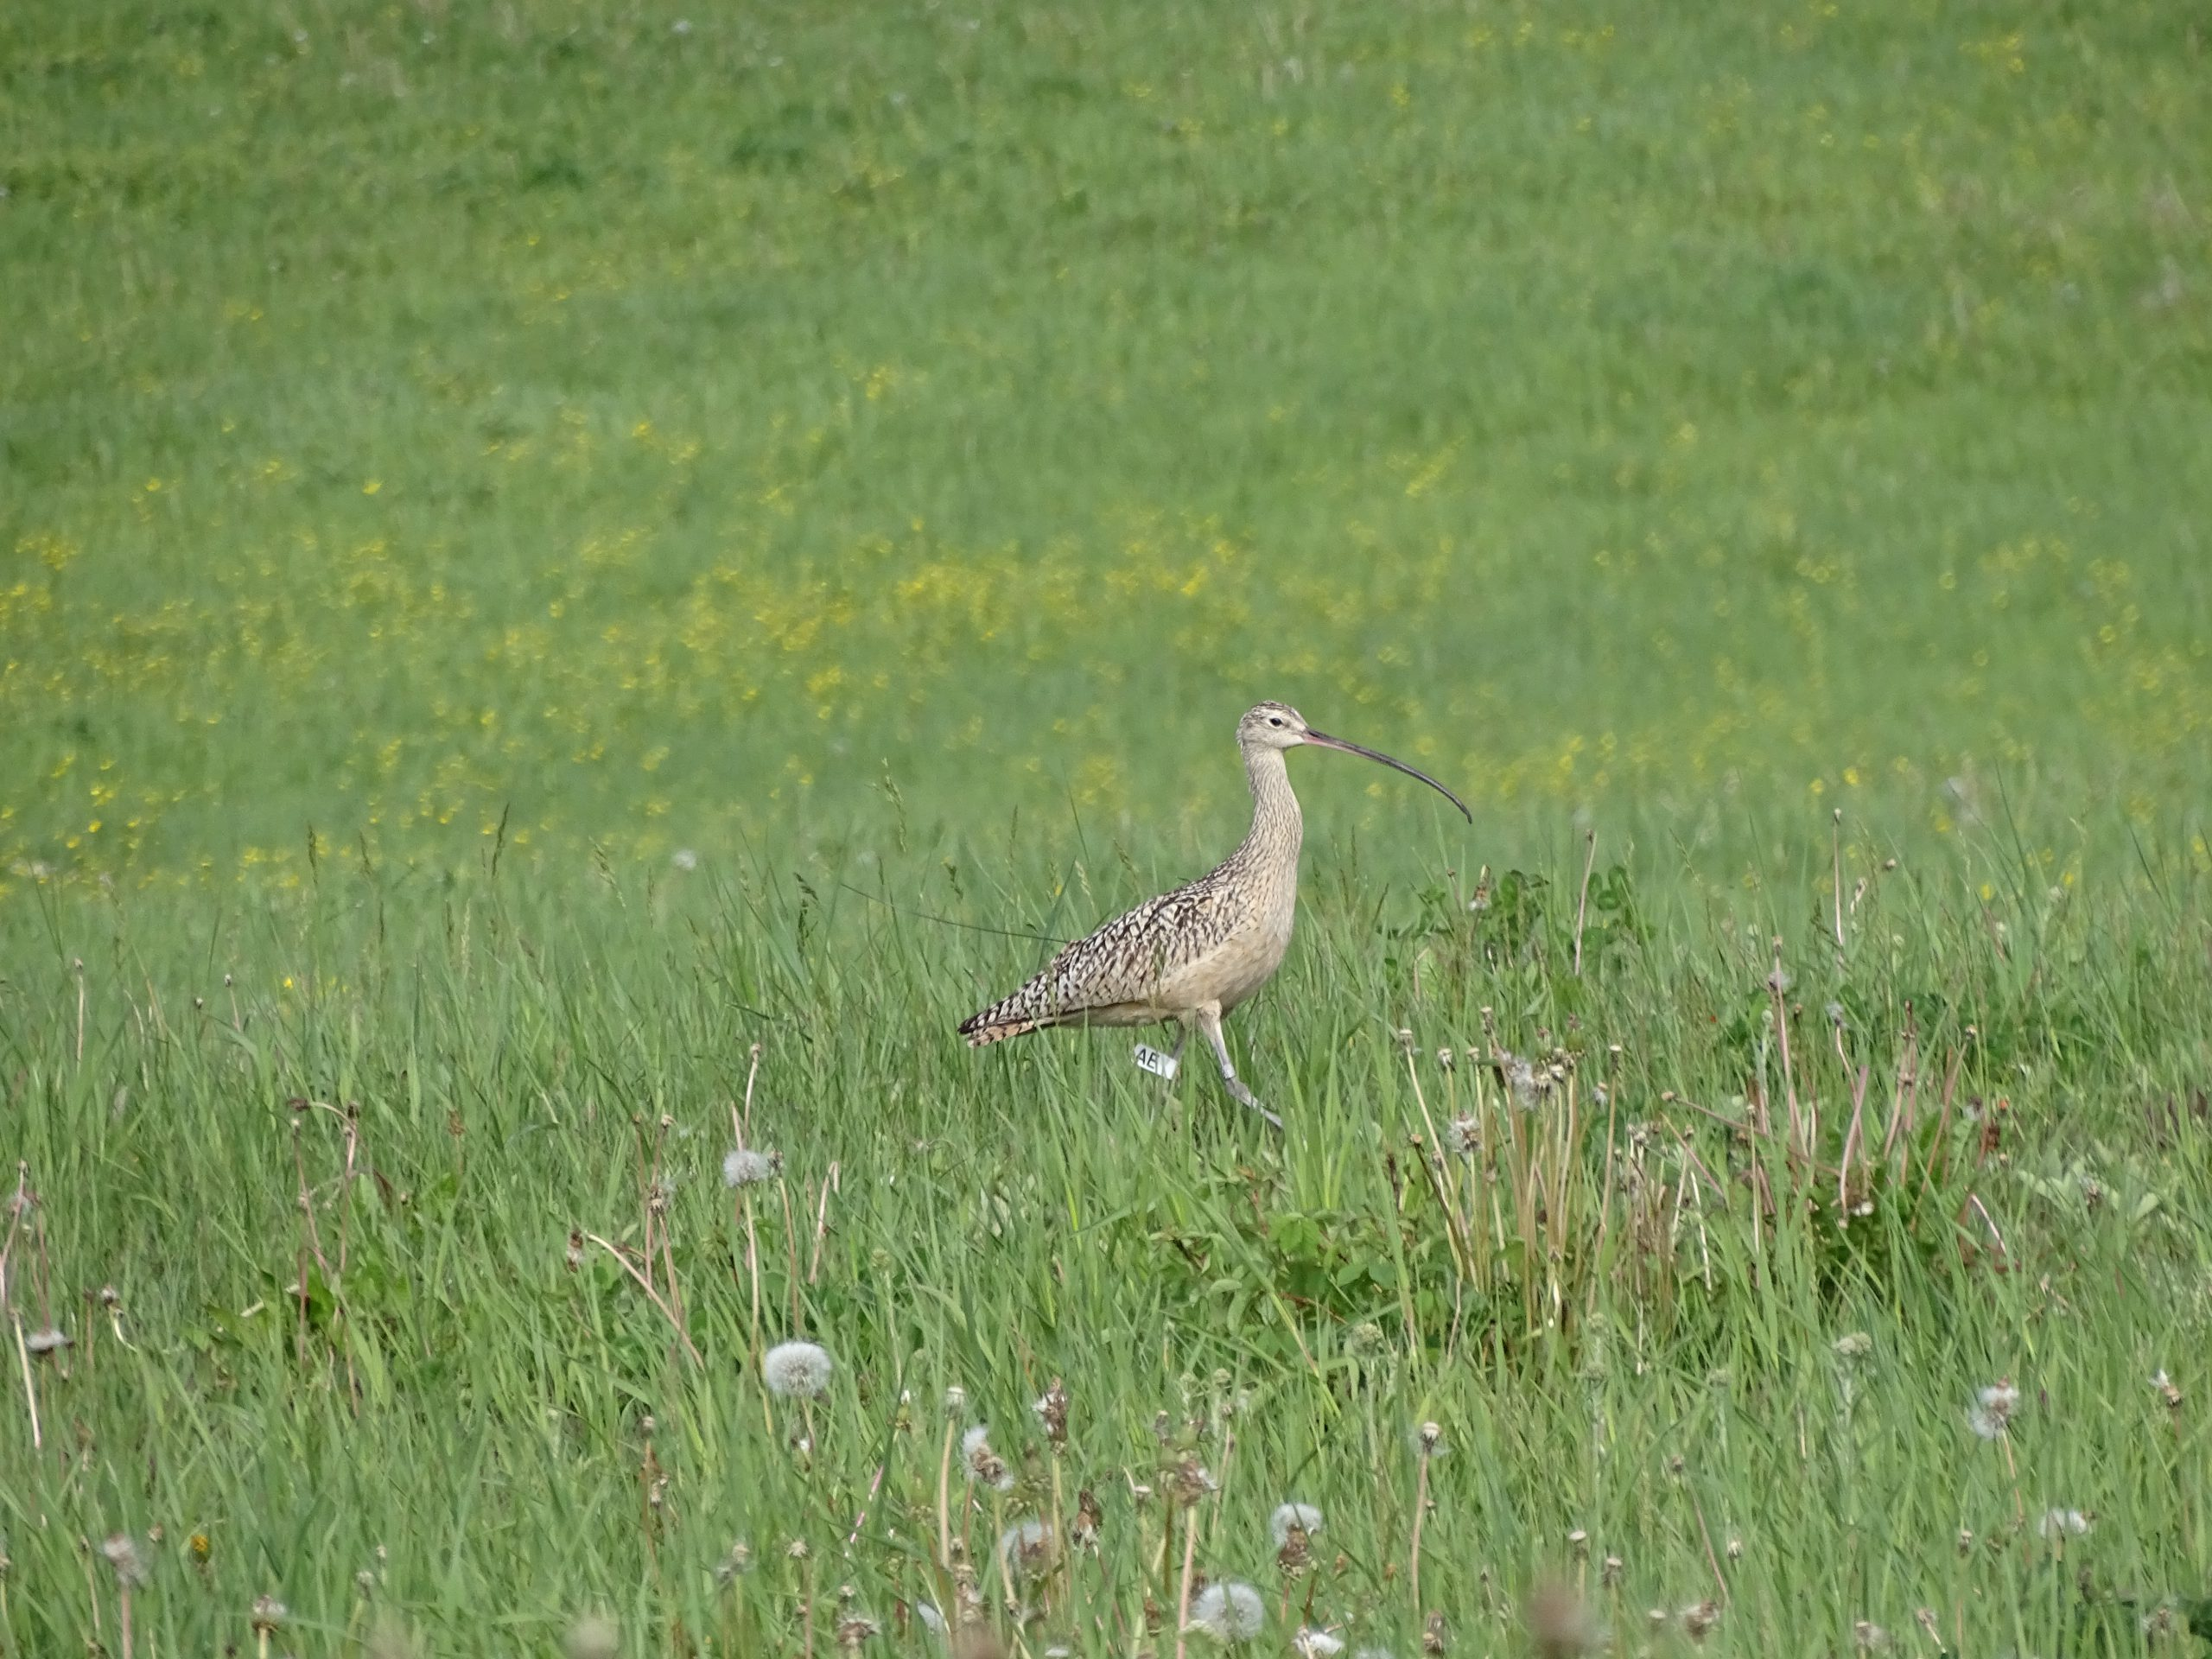 Long-billed Curlew in grassy pasture